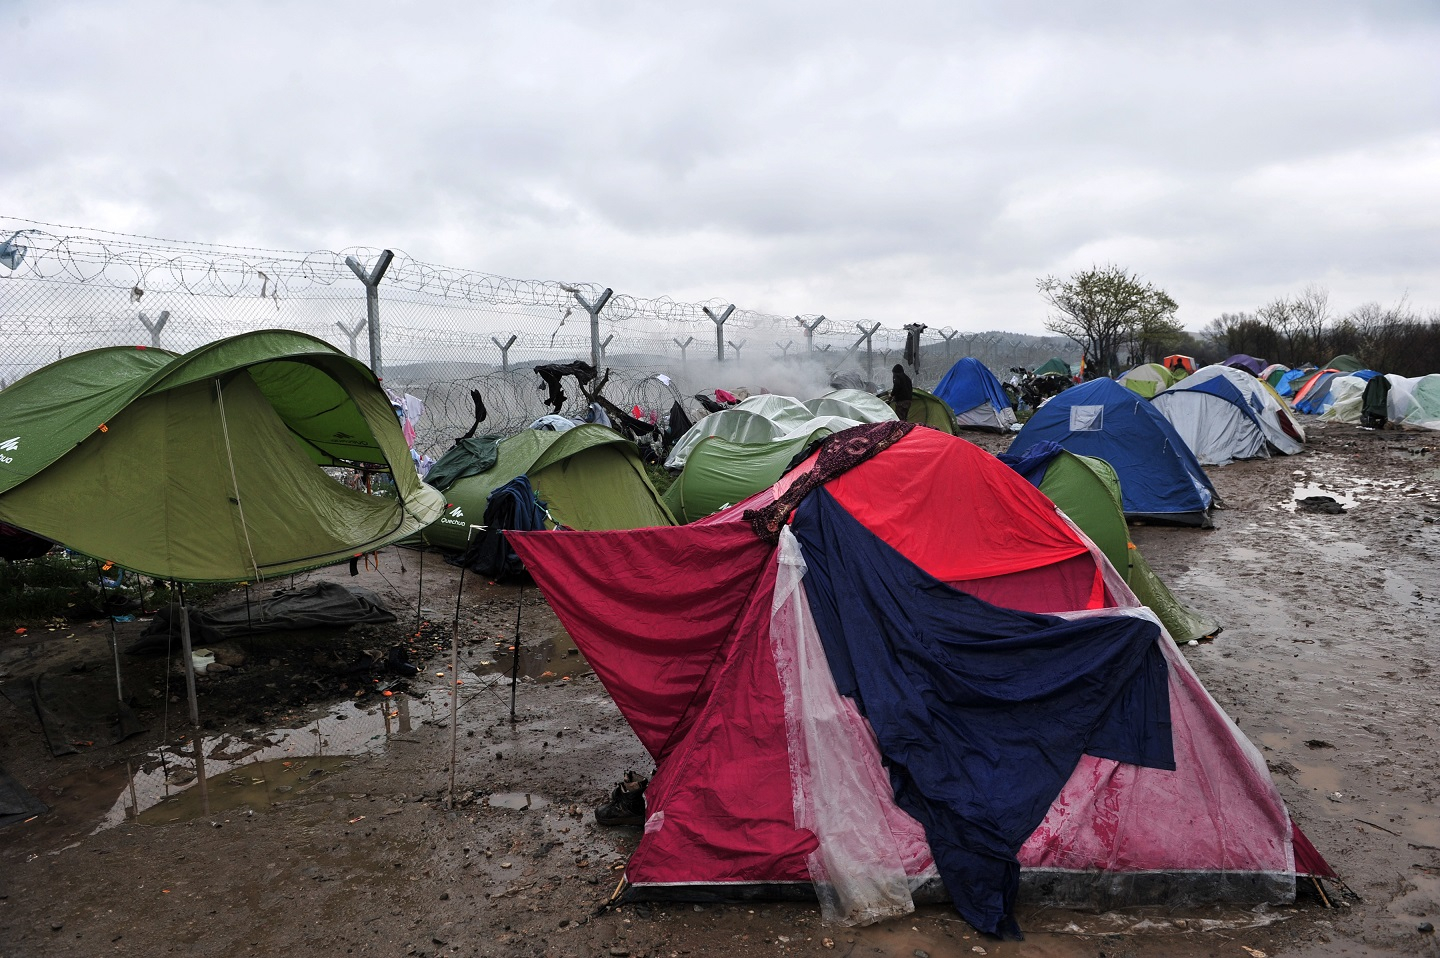 Refugee camp, Idomeni